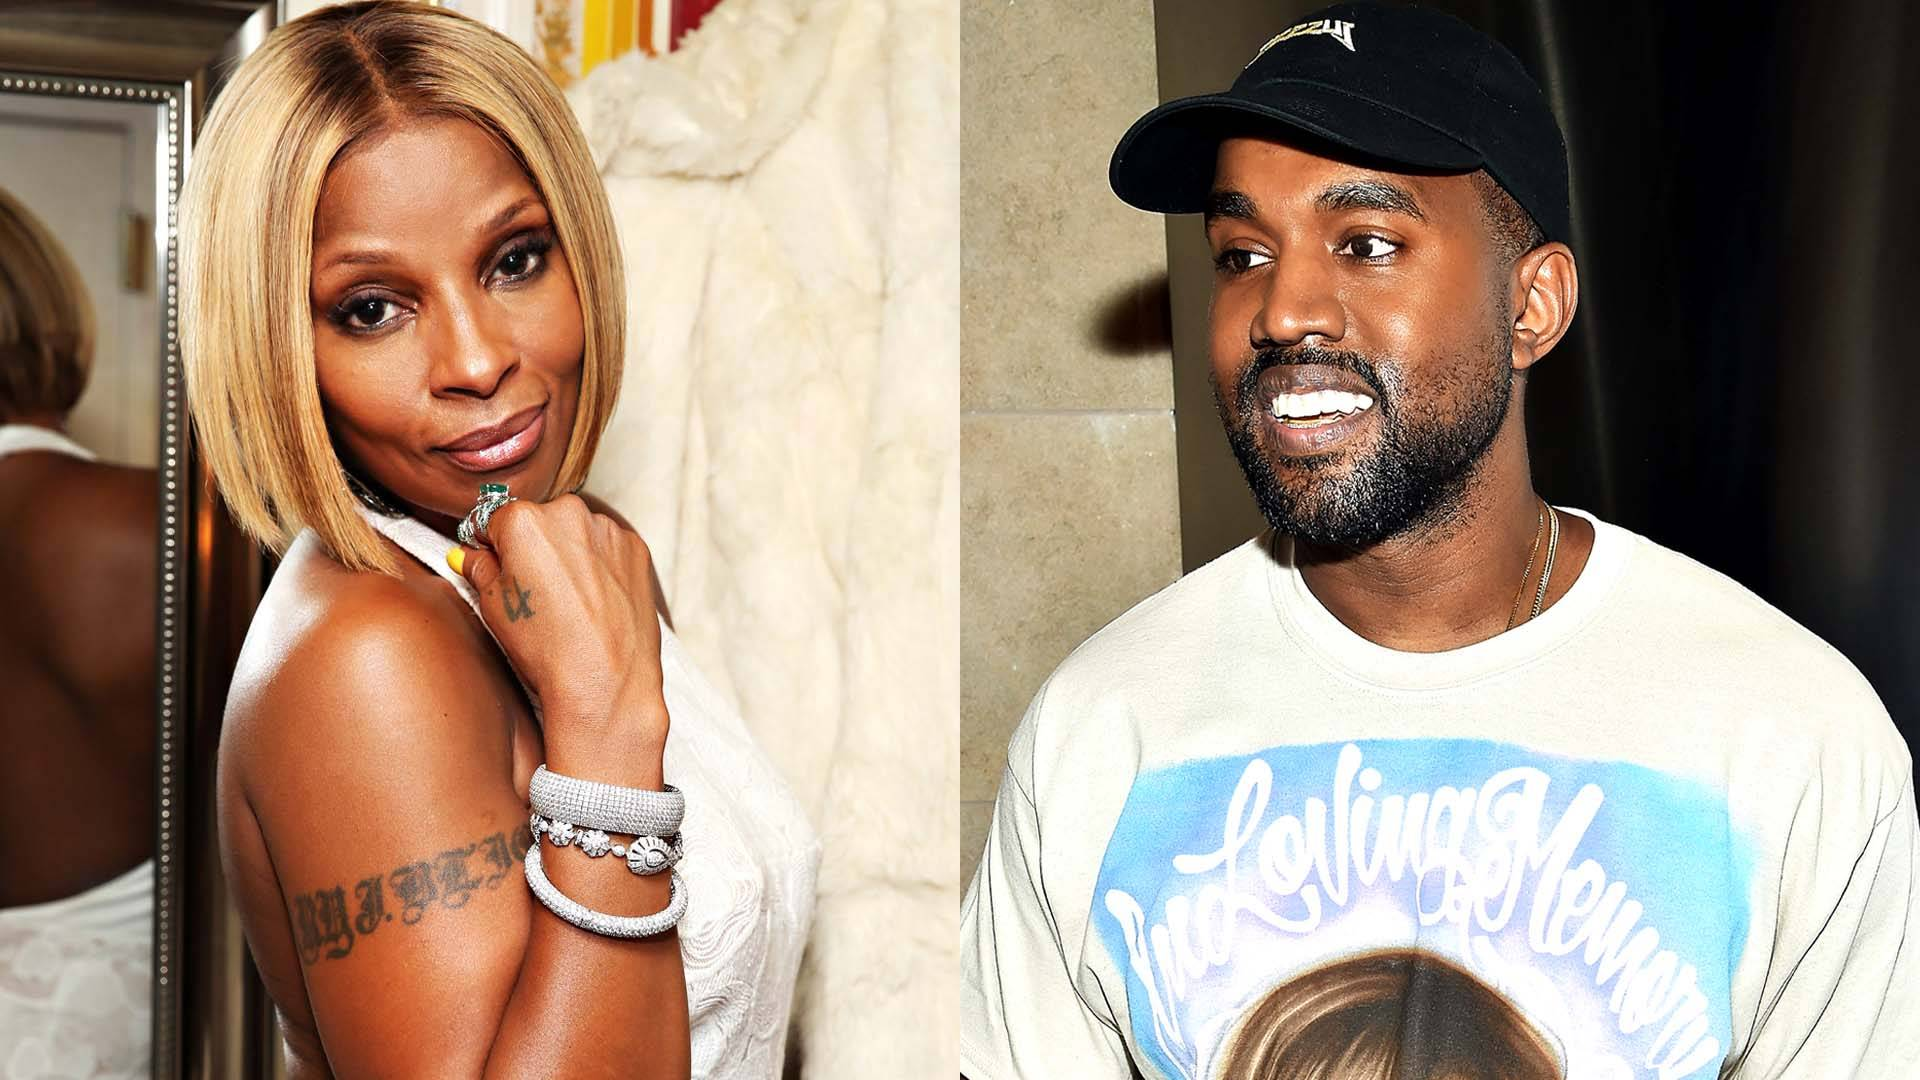 MARY J. BLIGE FT. KANYE WEST ? LOVE YOURSELF - (Photo from left: Jeff Kravitz/FilmMagic/Getty Images, Dimitrios Kambouris/Getty Images)